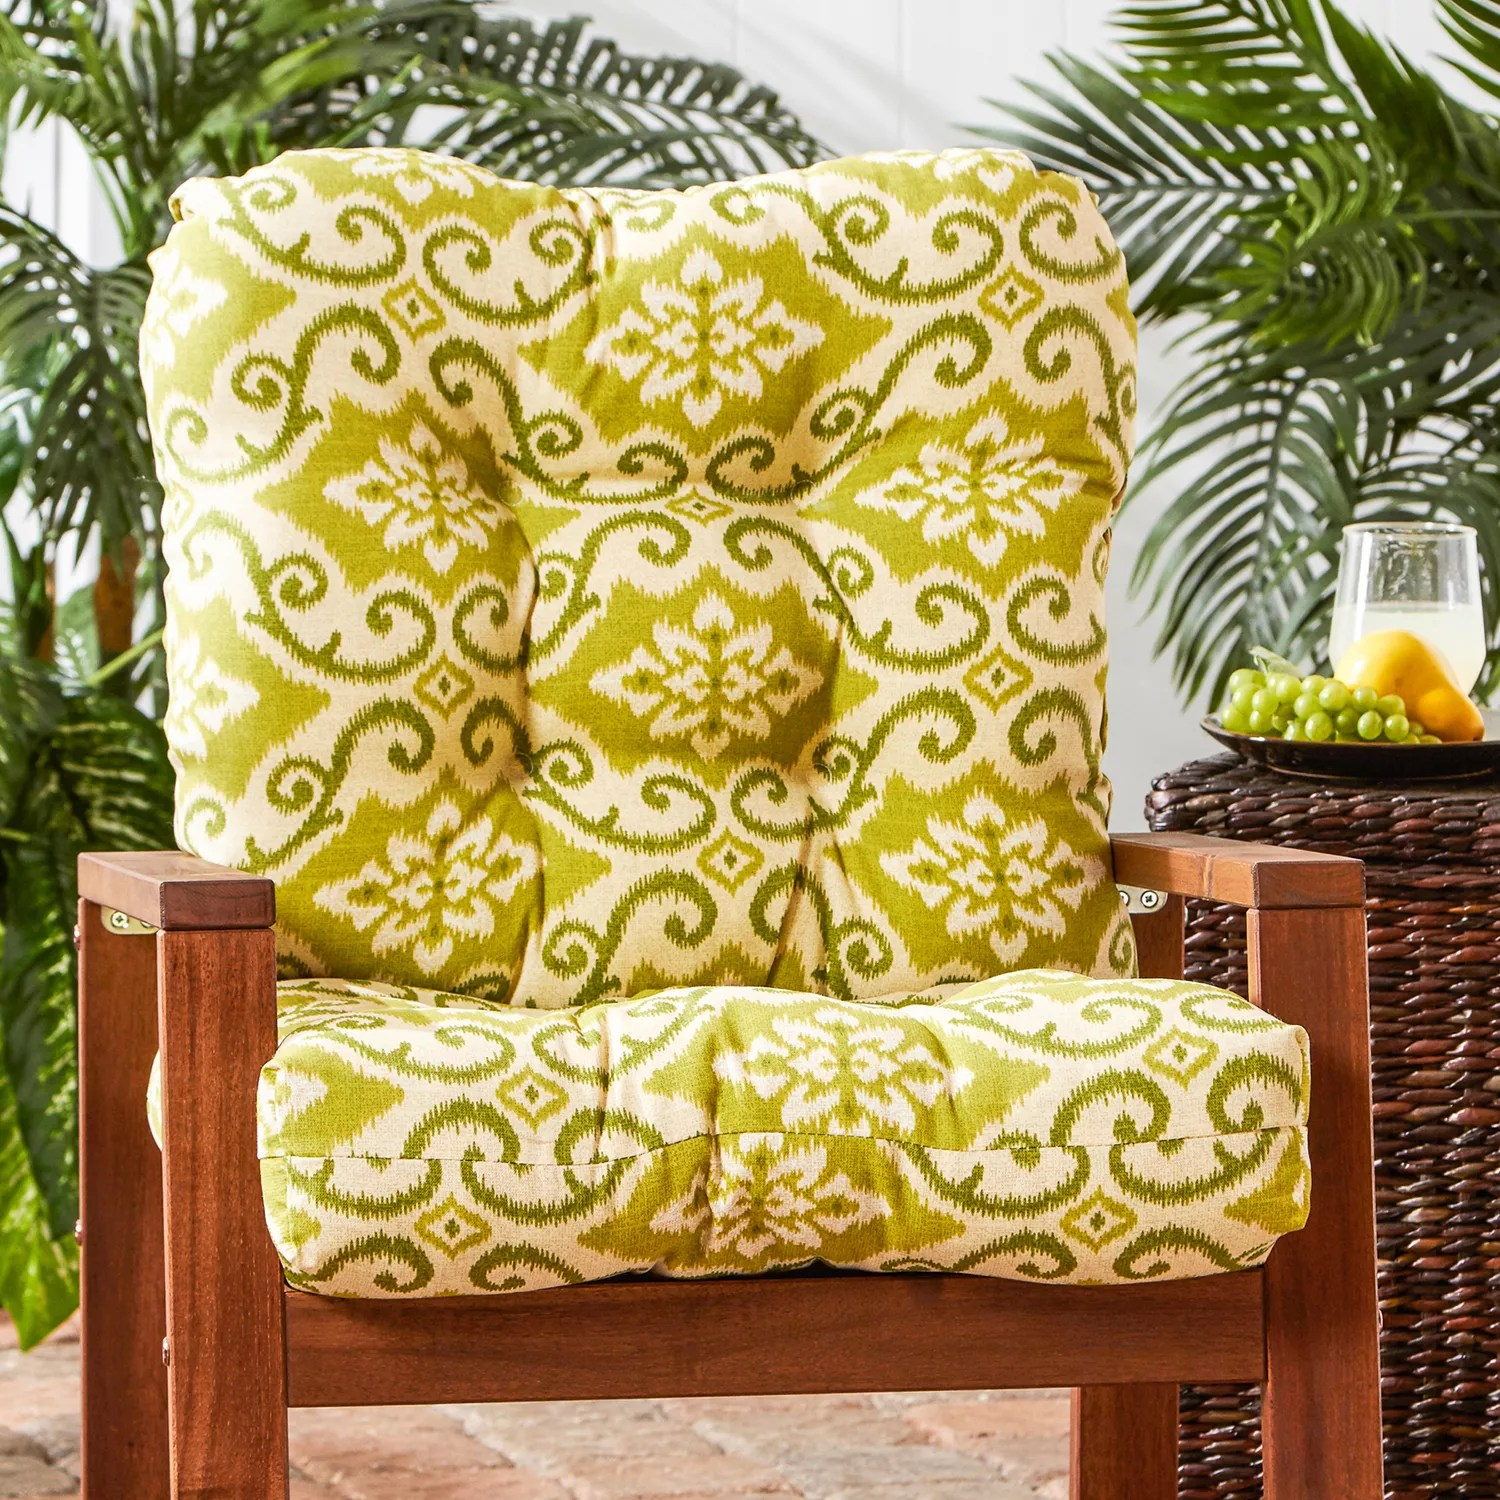 kohls outdoor chair cushions folding with shade kohl s greendale home fashions seat back cushion tall